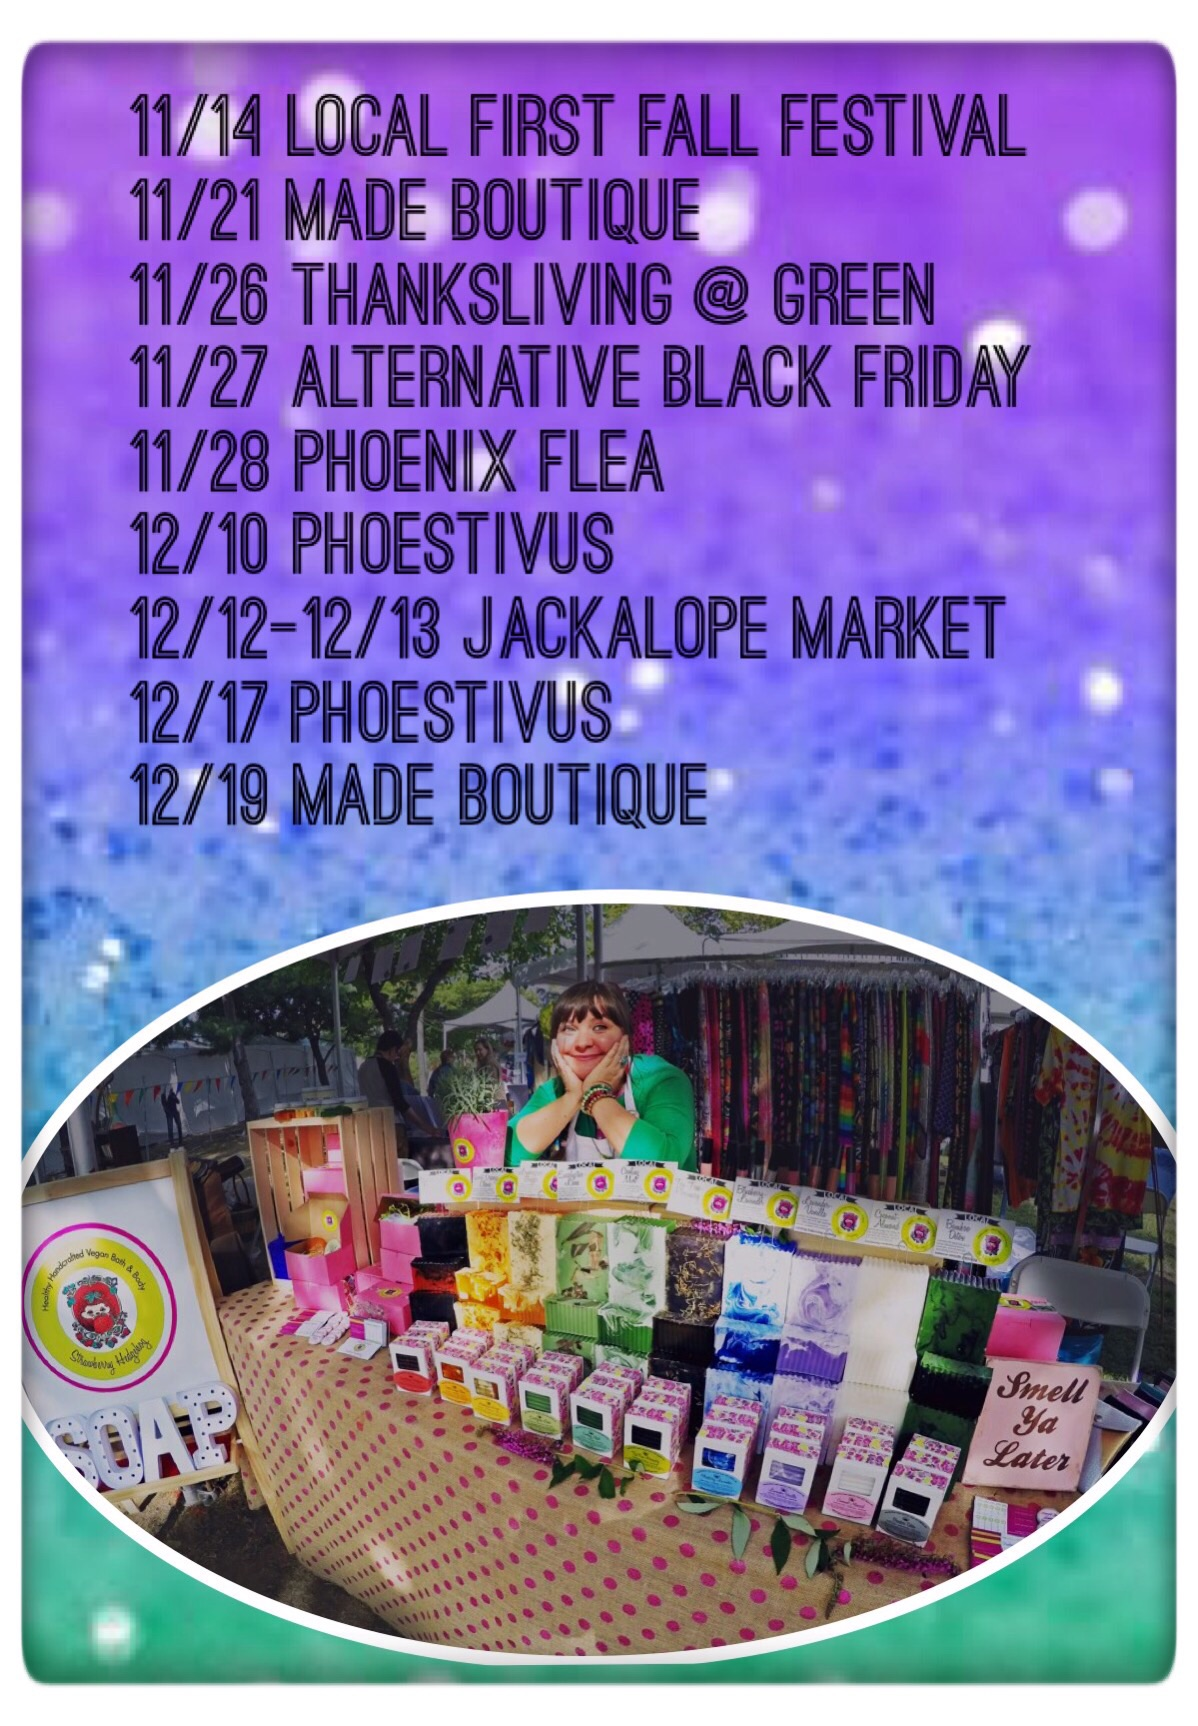 Come find us at one of the many events we will be at or stop by the Soap Shop!